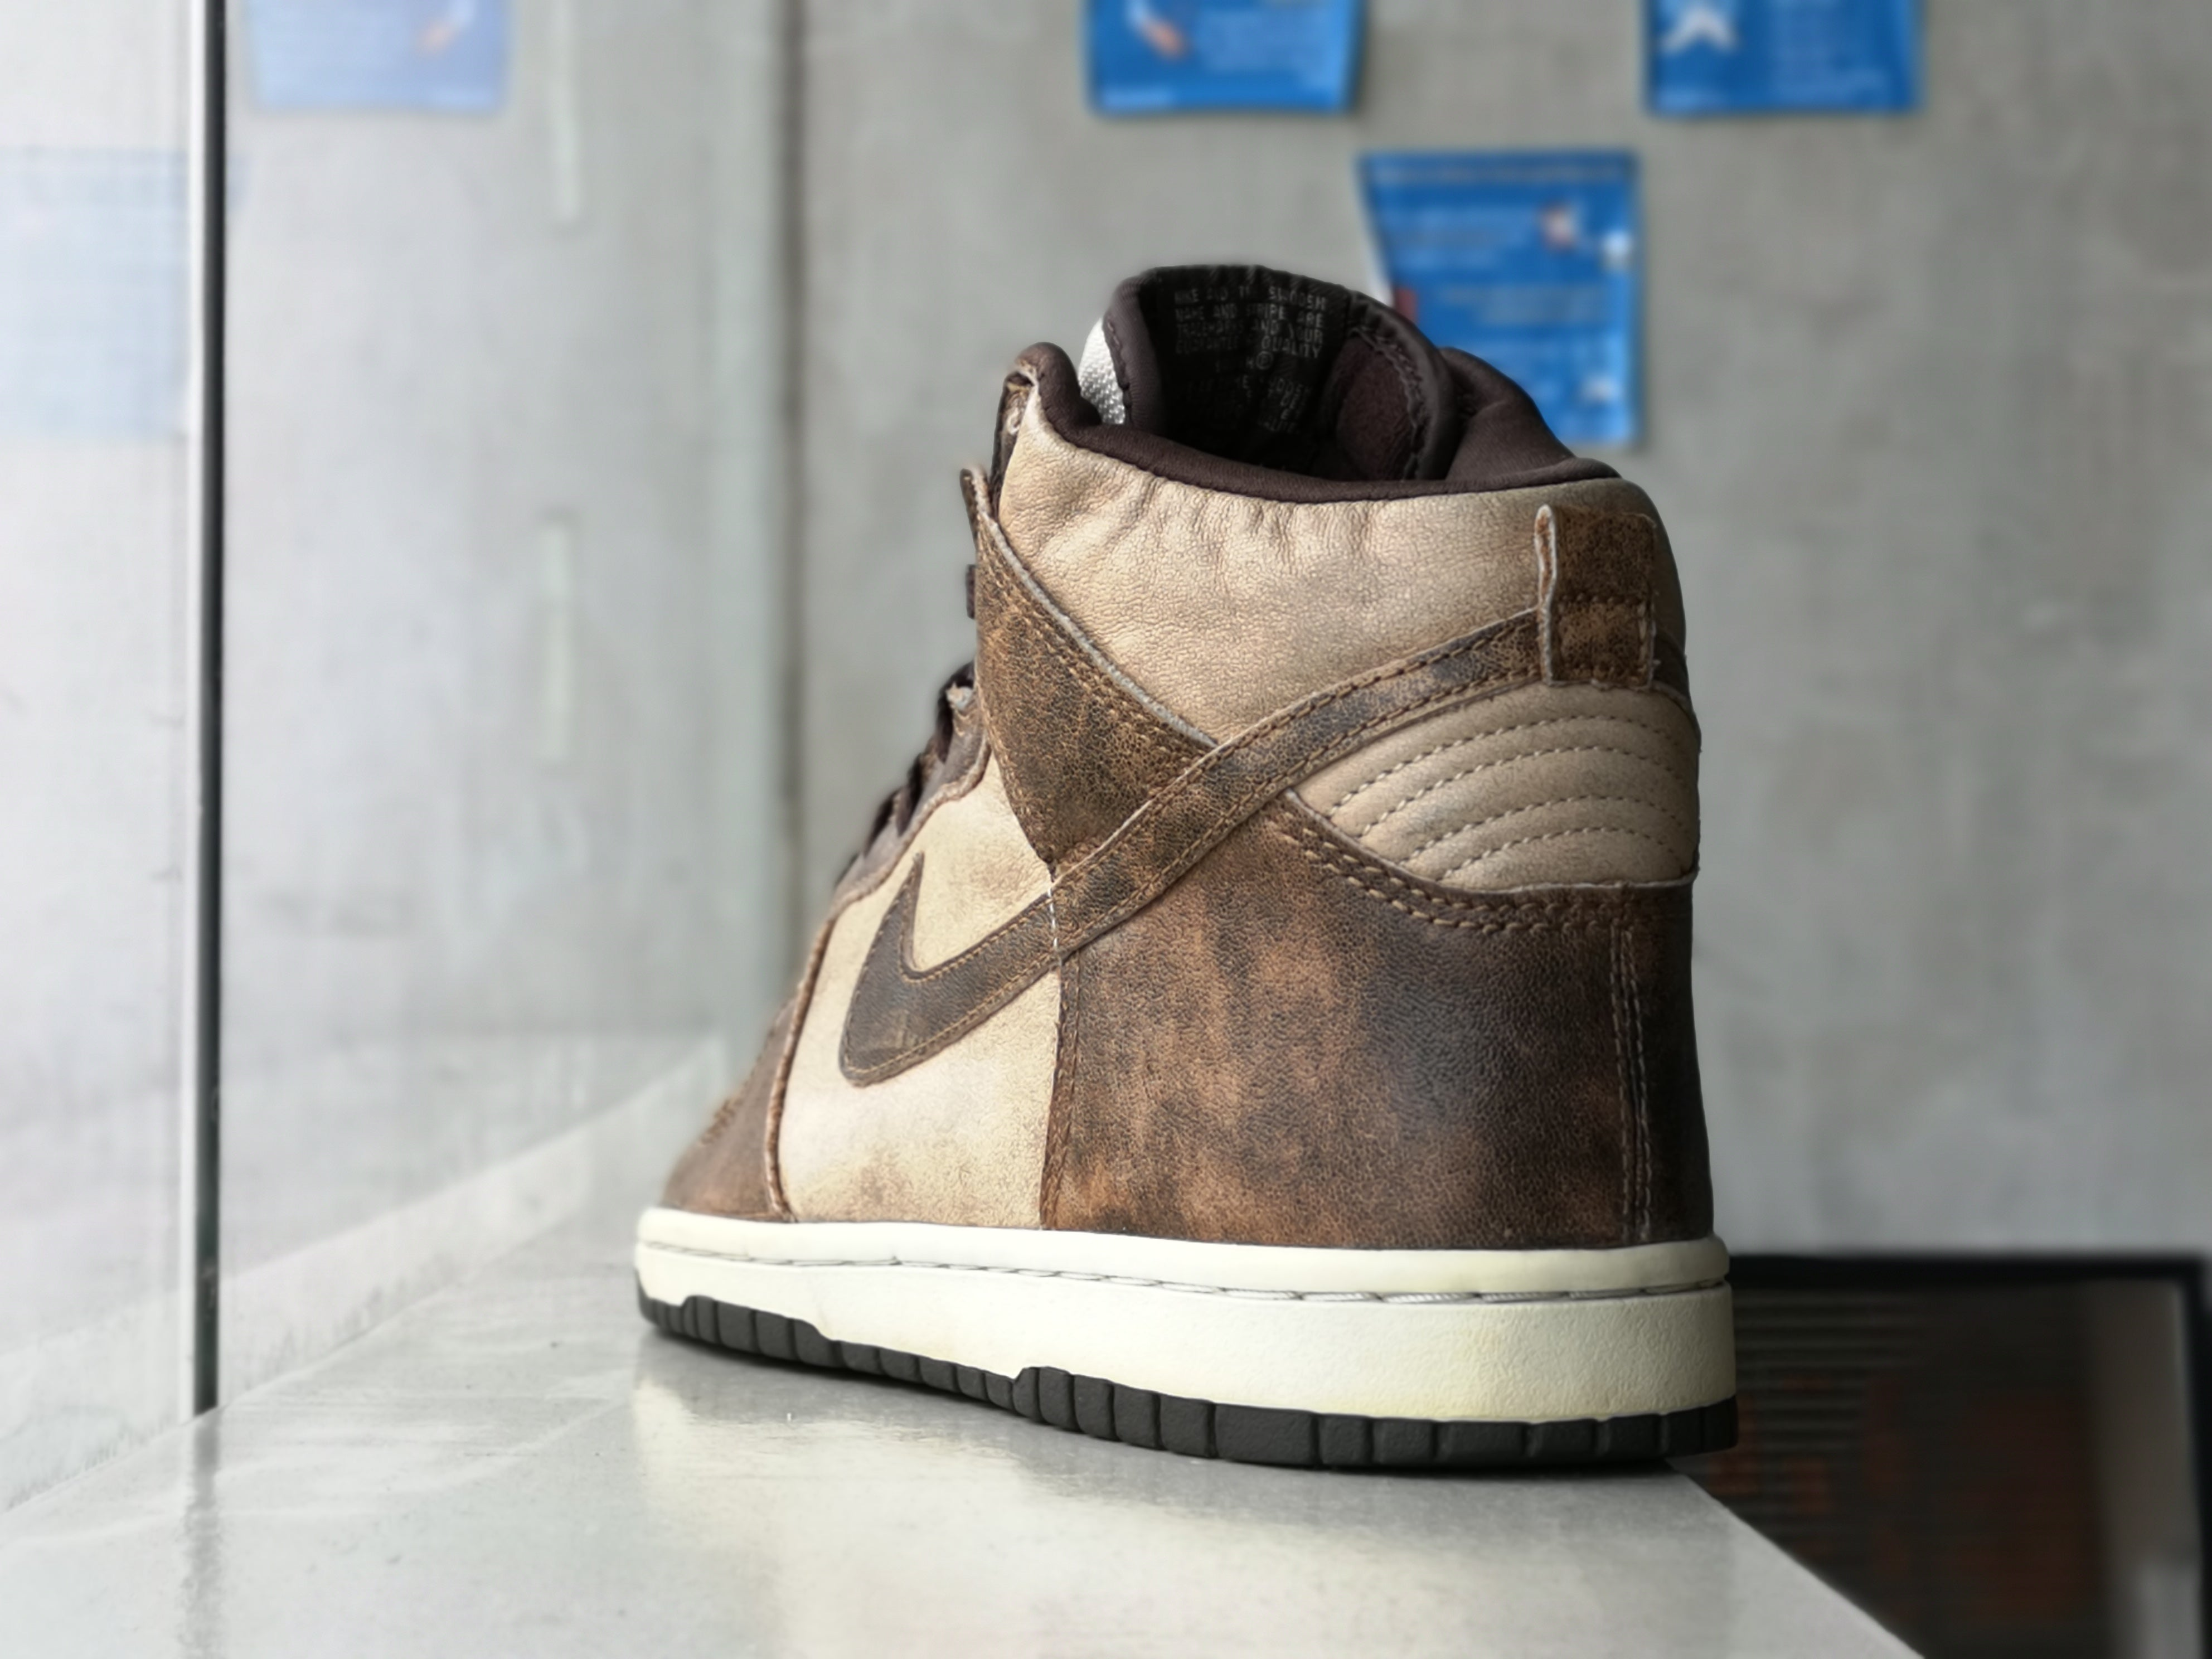 Nike Dunk High Dirty Pack/Cinder 2003